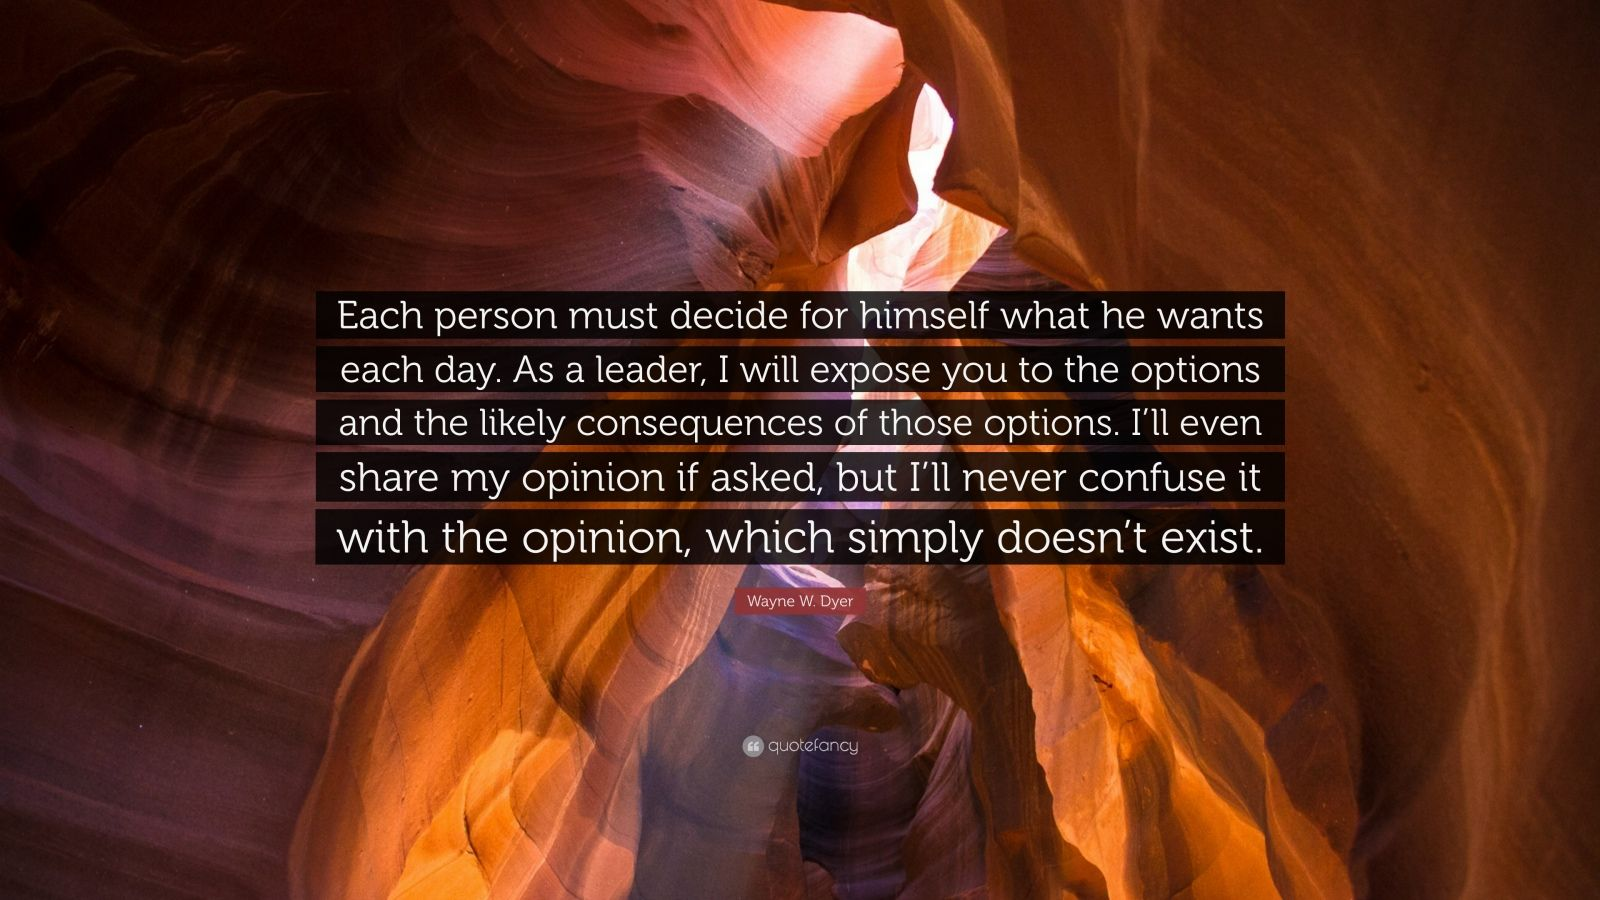 """Wayne W. Dyer Quote: """"Each person must decide for himself what he wants each day. As a leader, I will expose you to the options and the likely consequences of those options. I'll even share my opinion if asked, but I'll never confuse it with the opinion, which simply doesn't exist."""""""